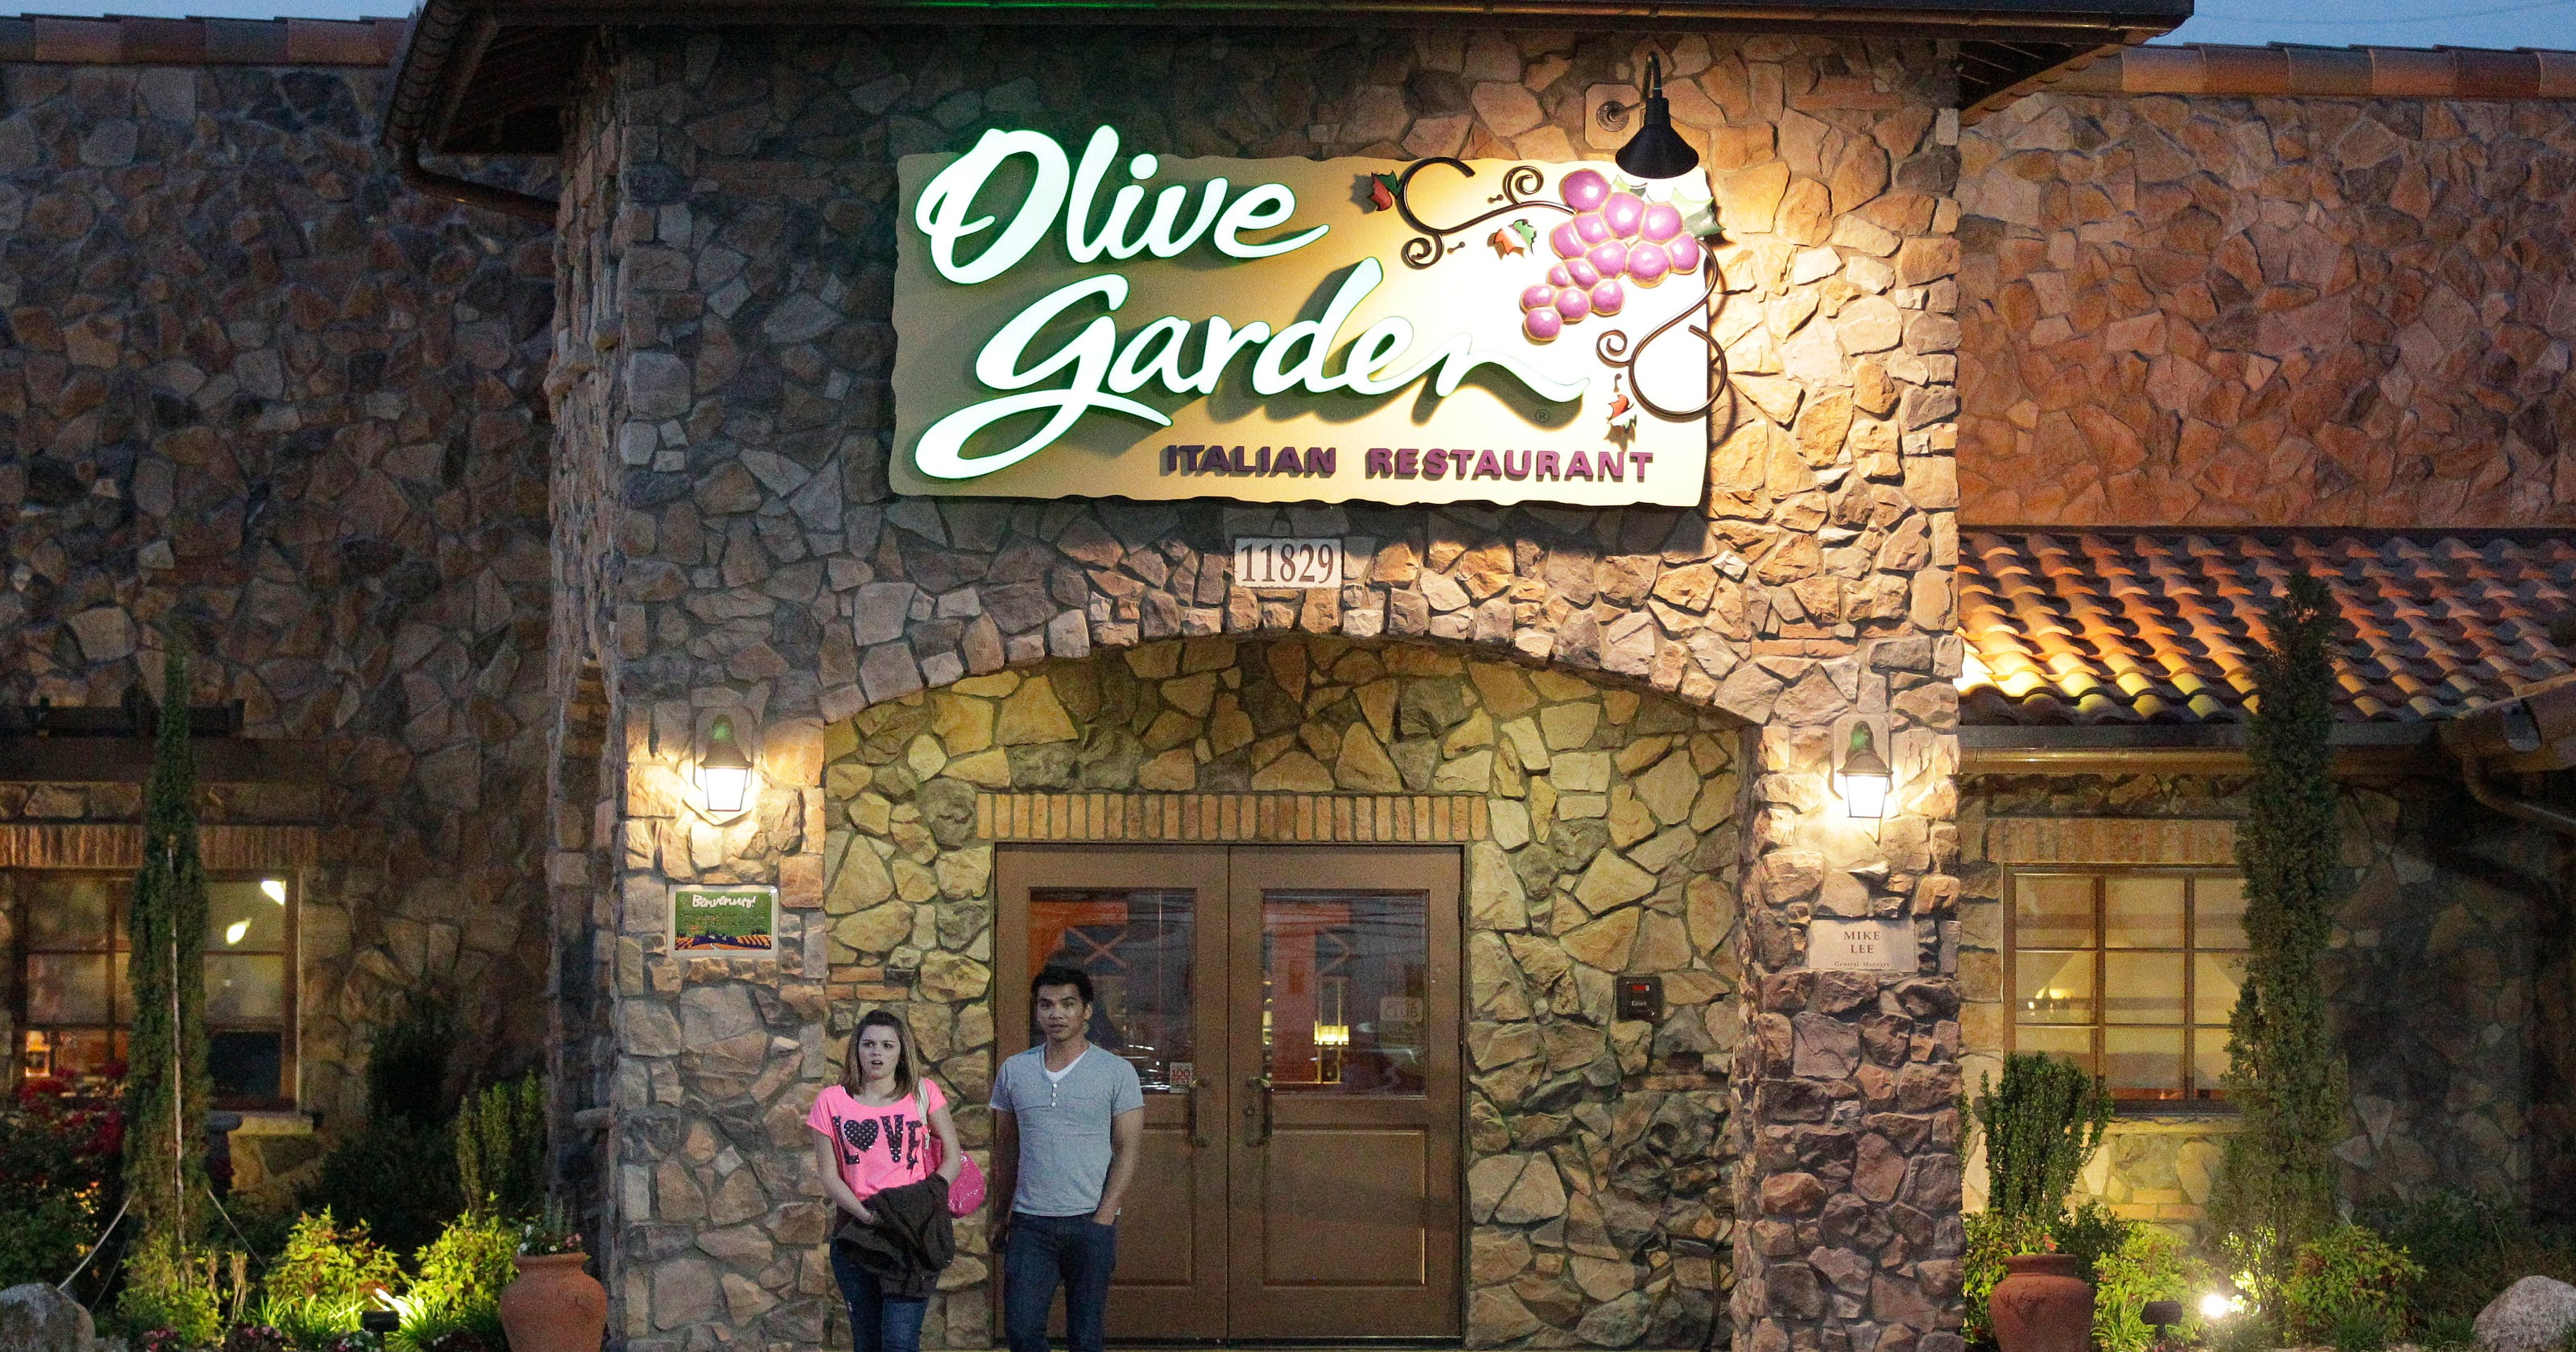 Experts offer ways to refresh Olive Garden